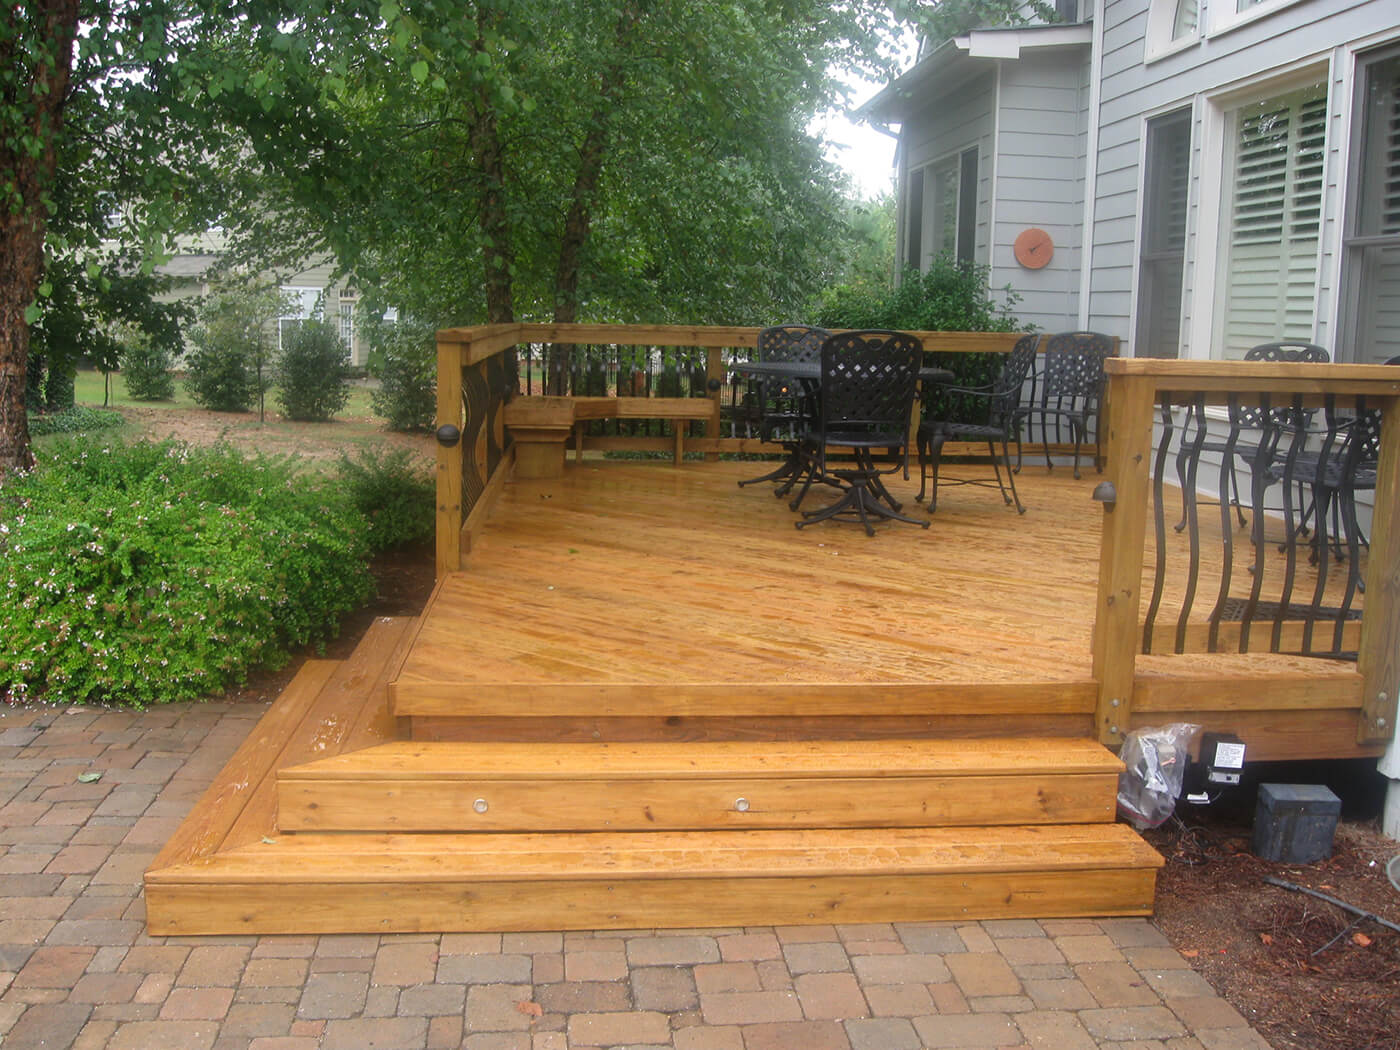 Custom backyard wood deck with railing and floating bench